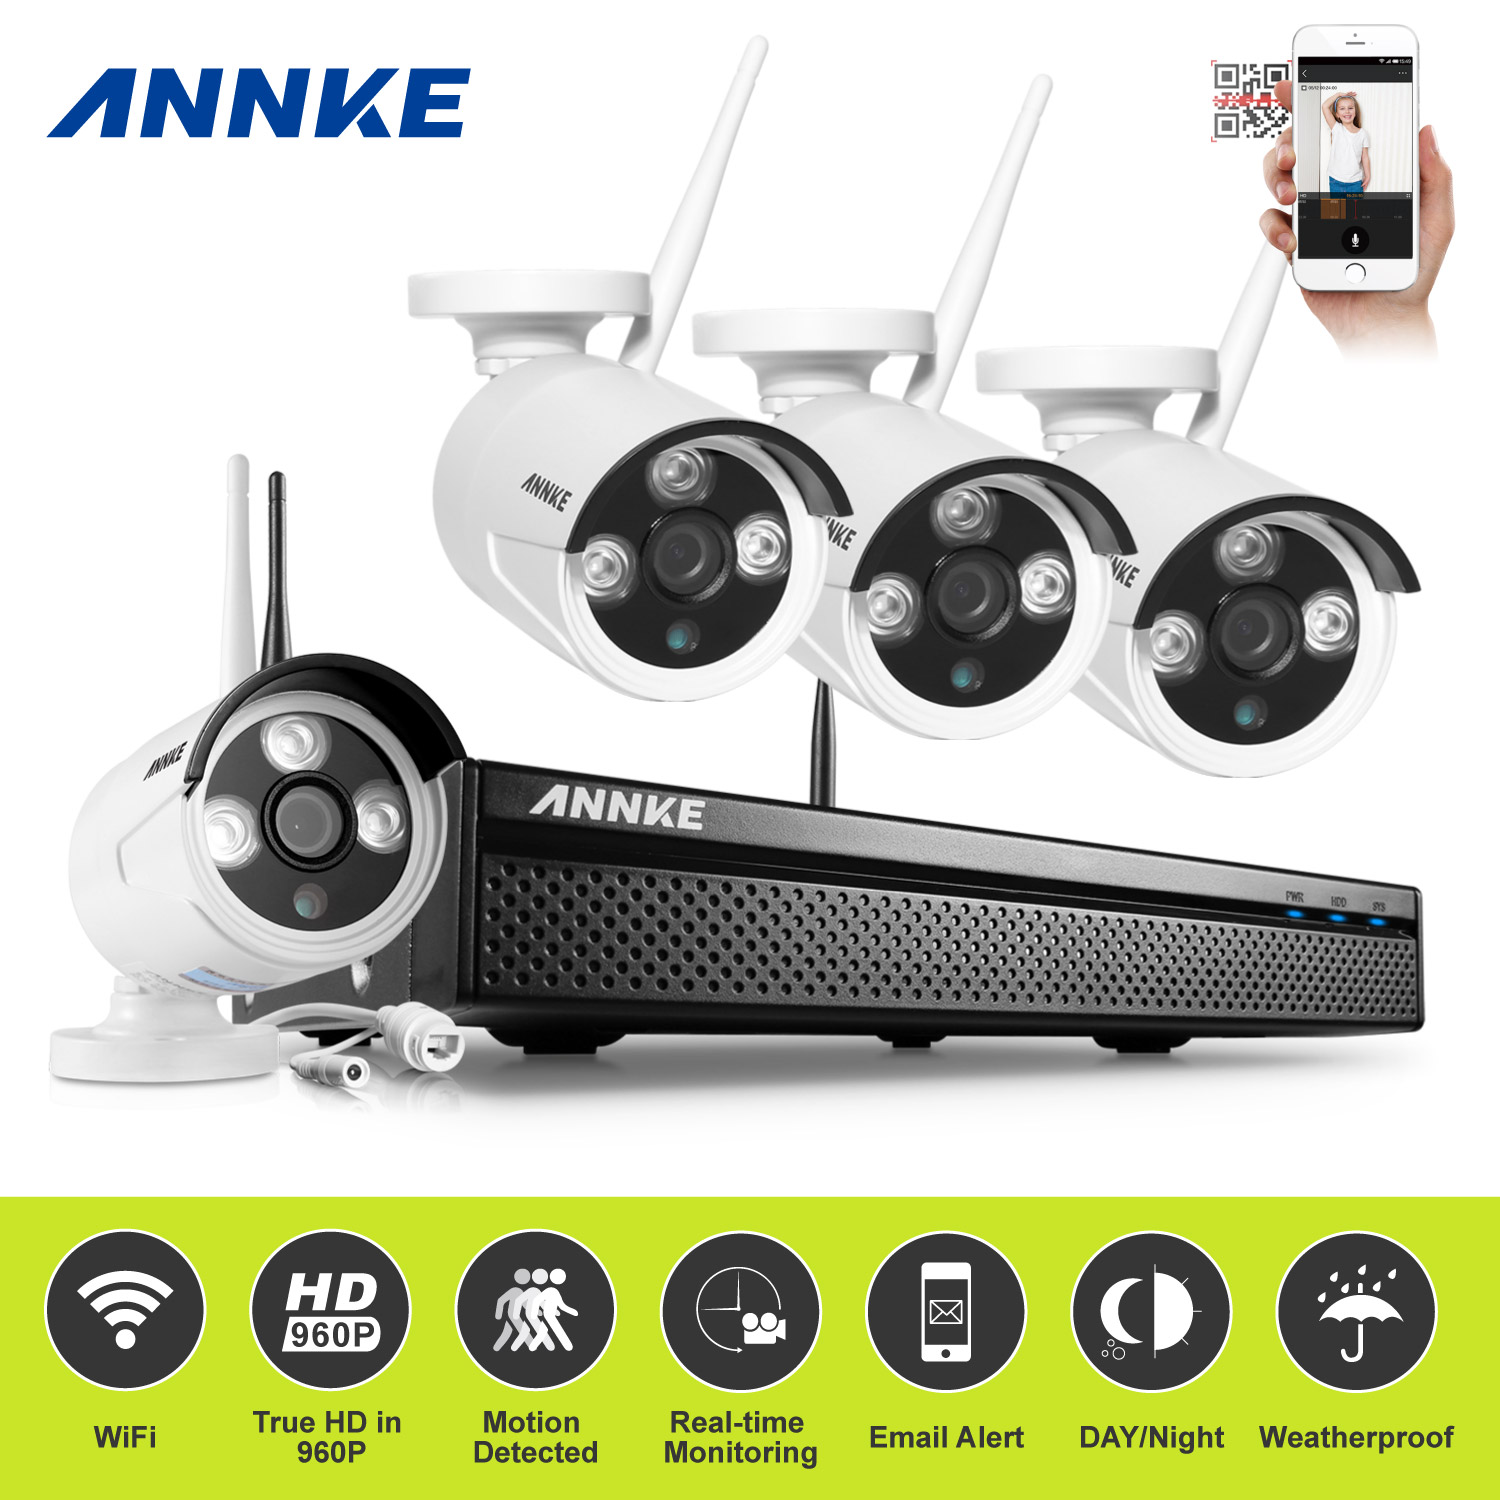 ANNKE 960P 4CH Wireless Surveillence System DVR 1.3MP Cameras Security Kit With Super Night Vision With No Hard Drive Disk